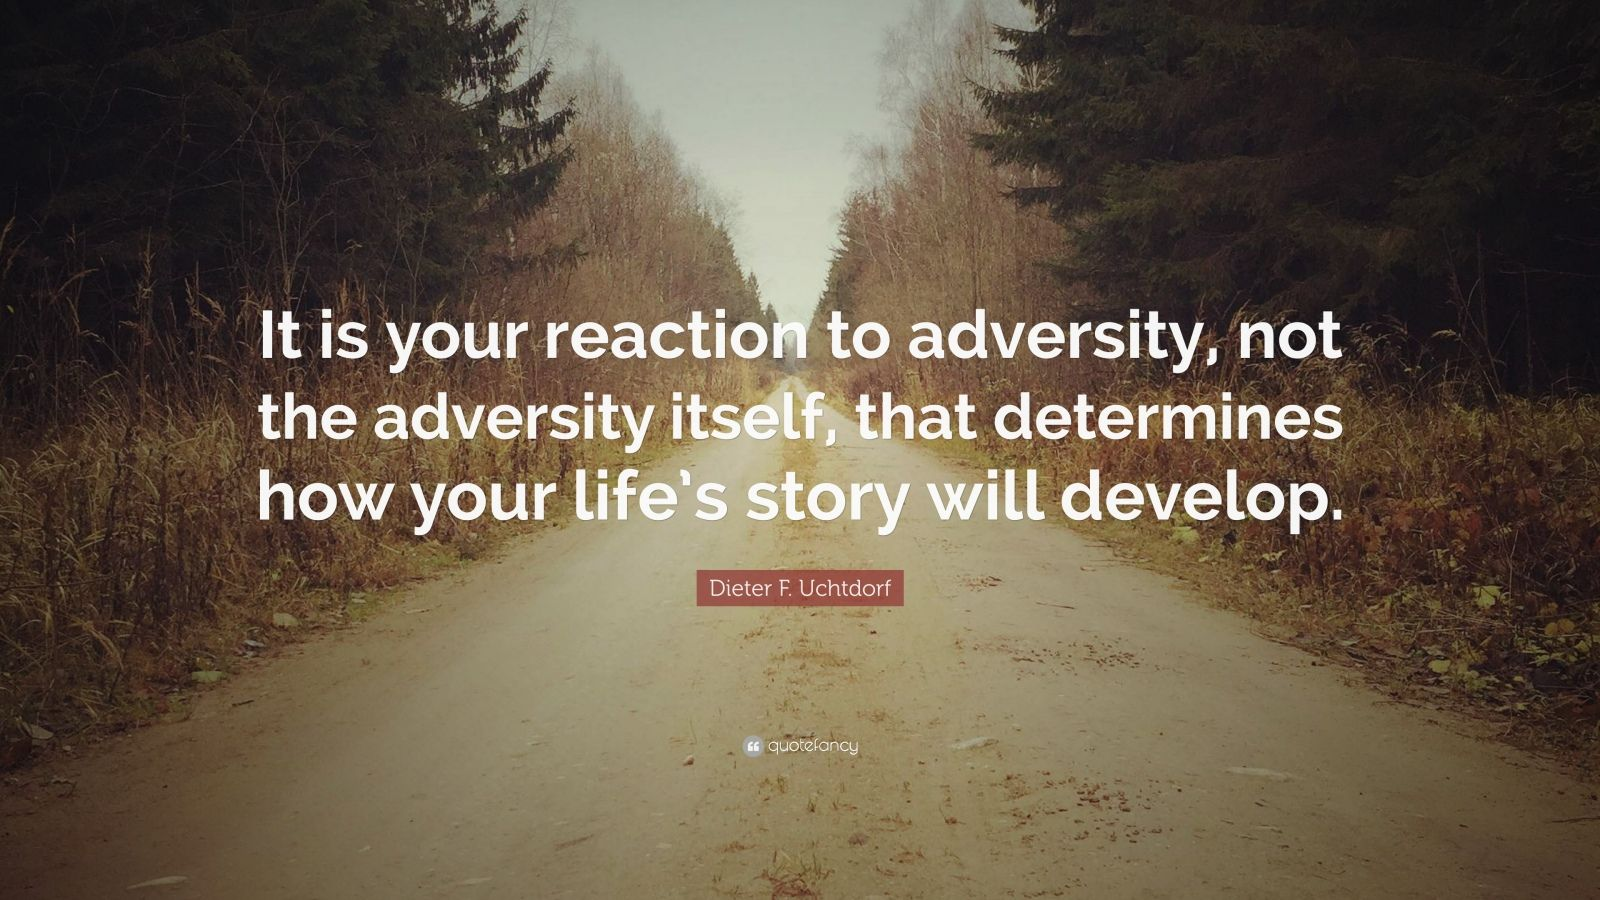 "Adversity Quotes: ""It is your reaction to adversity, not the adversity itself, that determines how your life's story will develop."" — Dieter F. Uchtdorf"